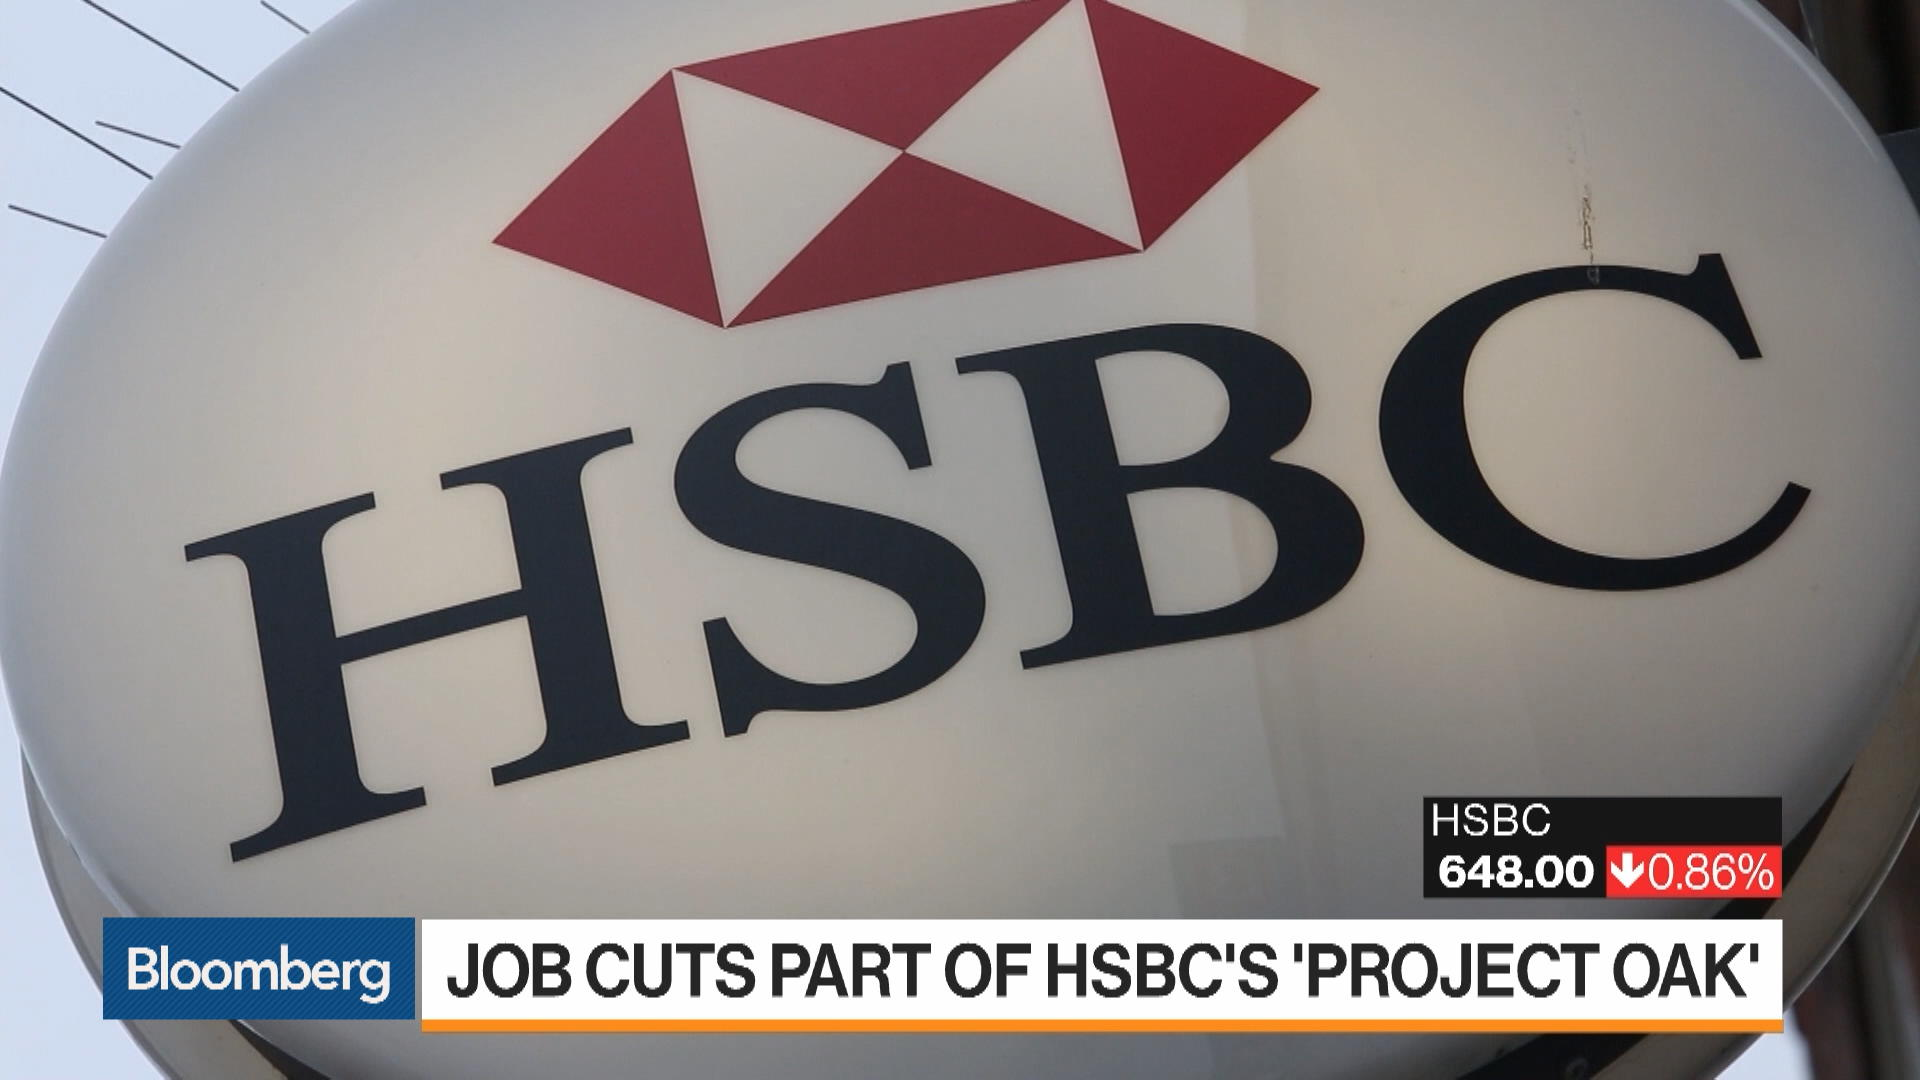 HSBC Plans to Cut Hundreds of Investment Bank Jobs - Bloomberg